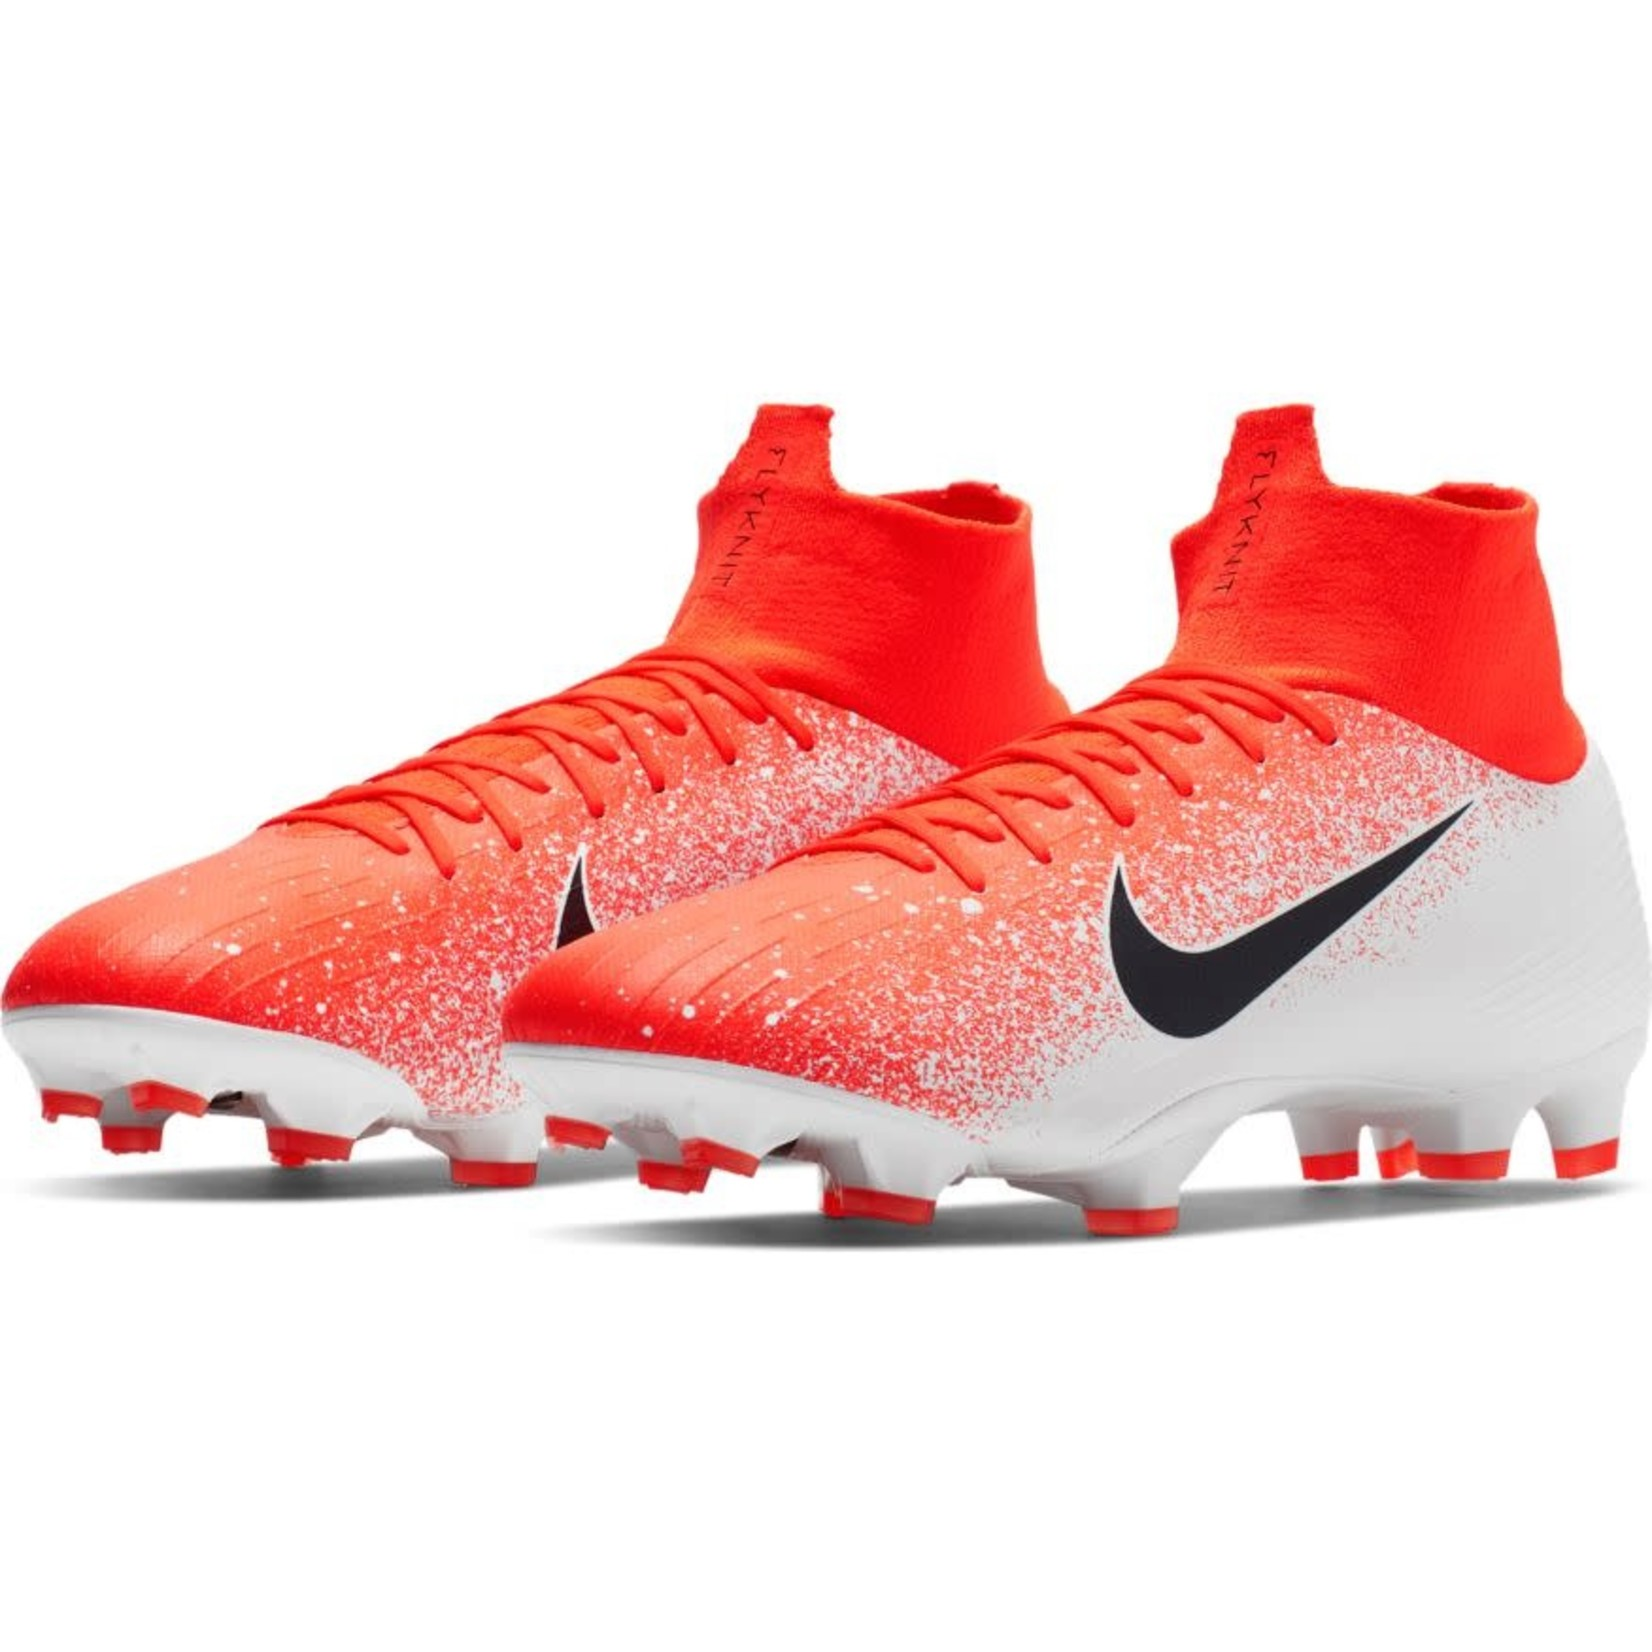 NIKE MERCURIAL SUPERFLY 6 PRO FG (ORANGE/WHITE)